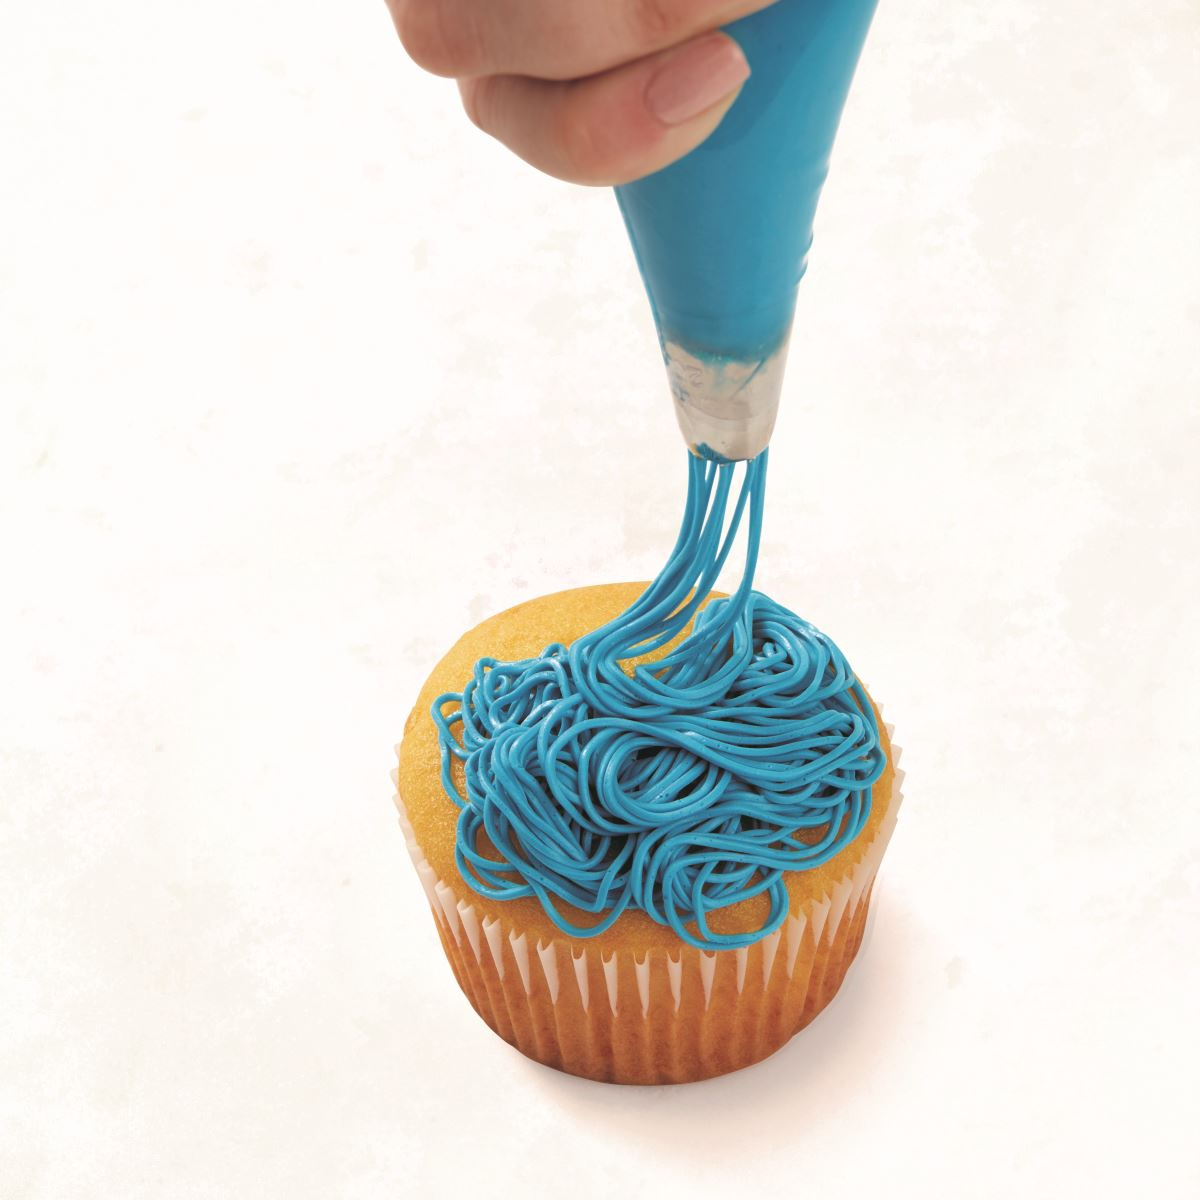 BLUE MULTI-EYED CUPCAKE step 1